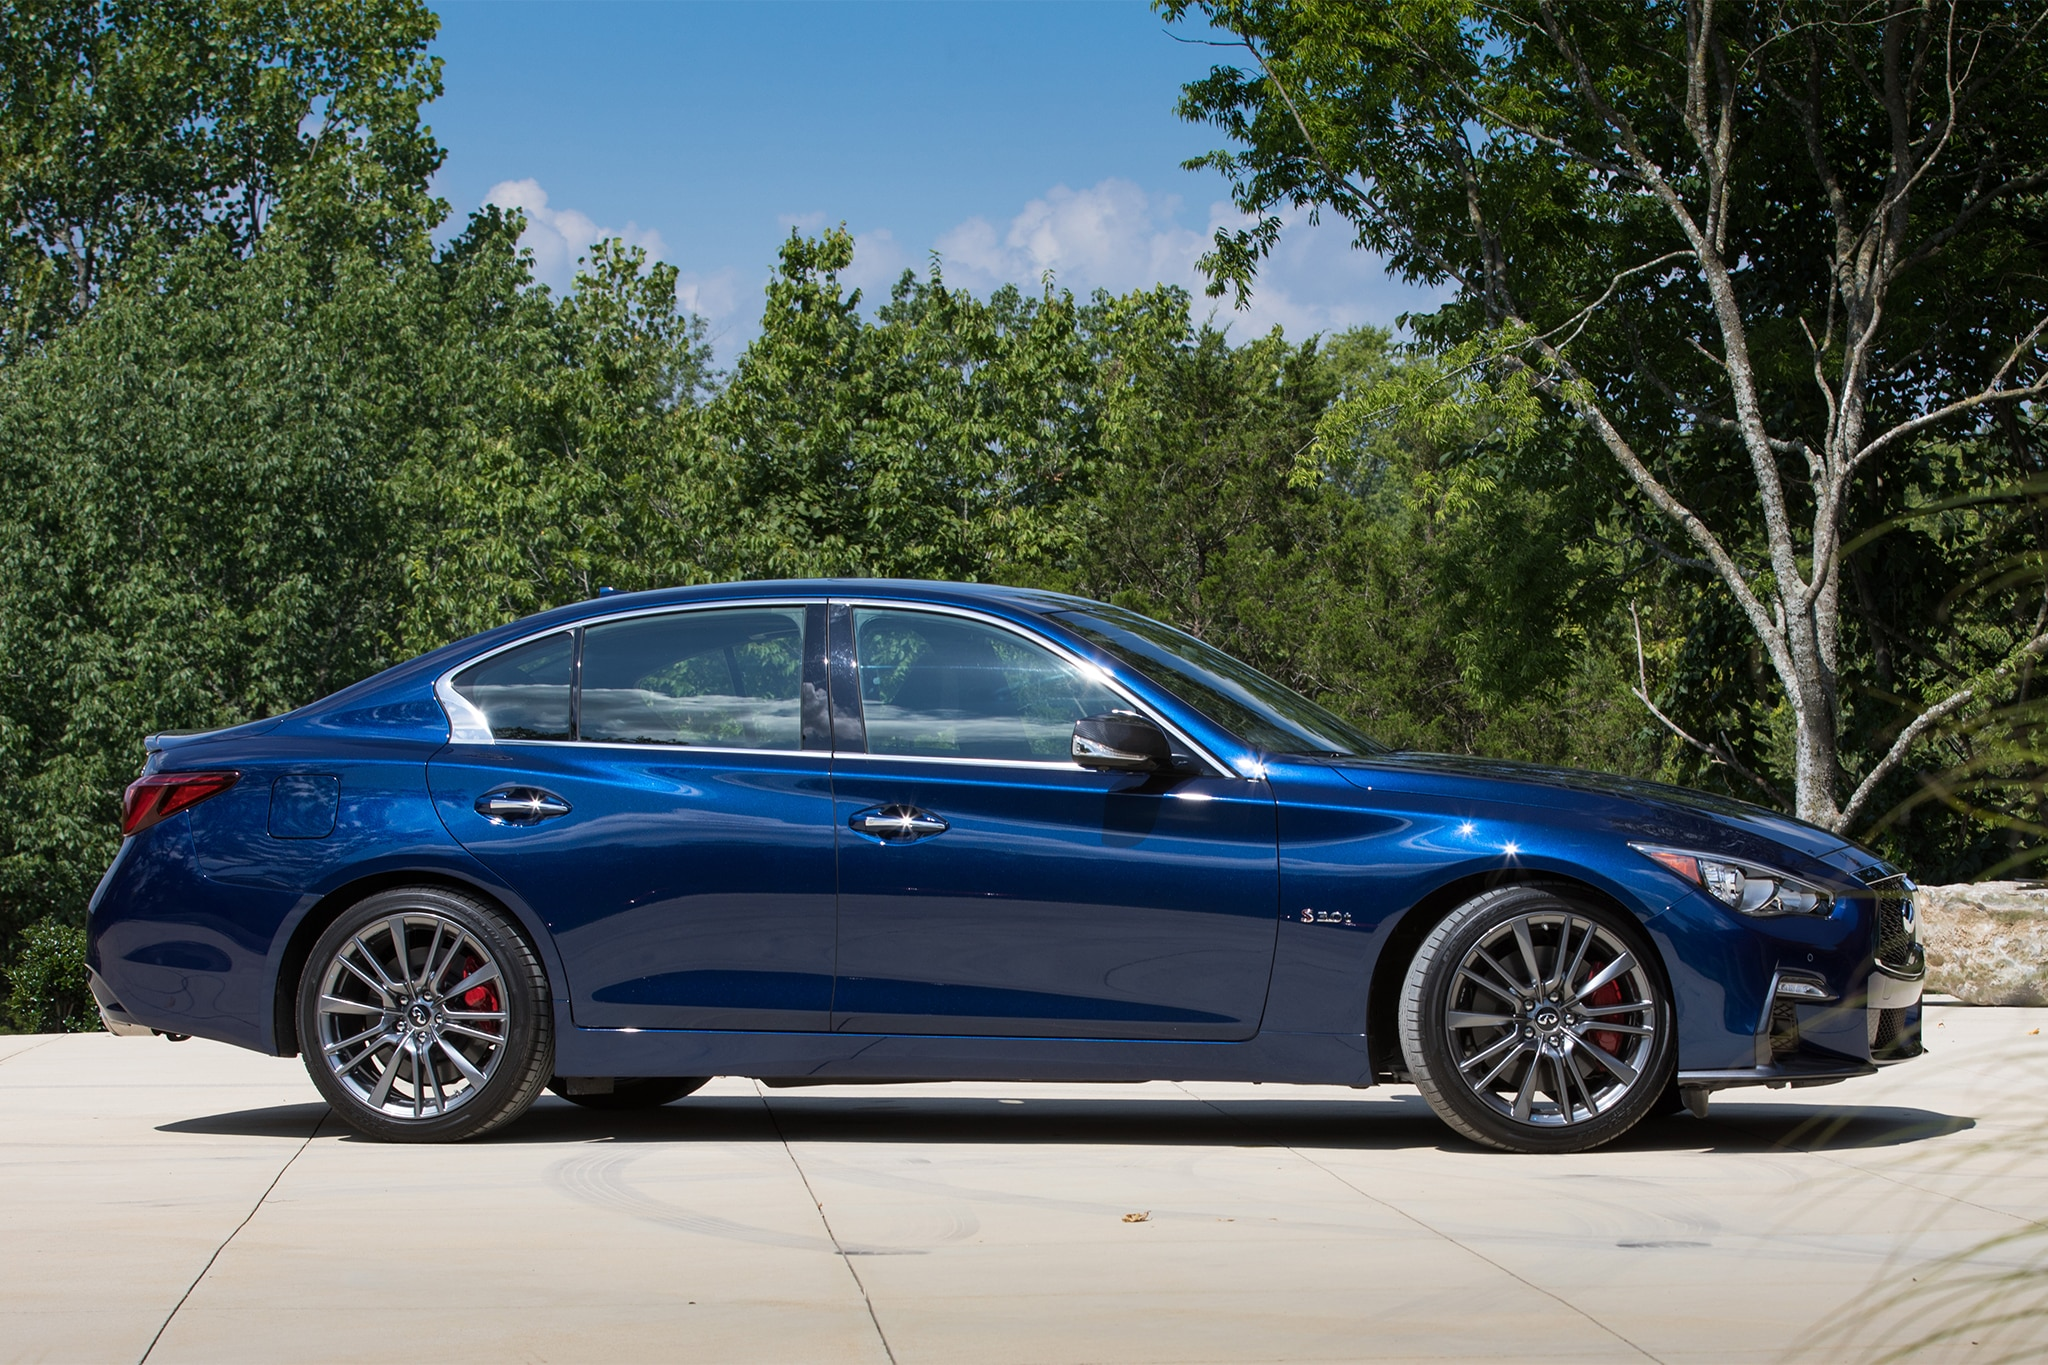 2017 Infiniti Q50 Specs >> 2018 Infiniti Q50 Red Sport 400 First Drive Review | Automobile Magazine